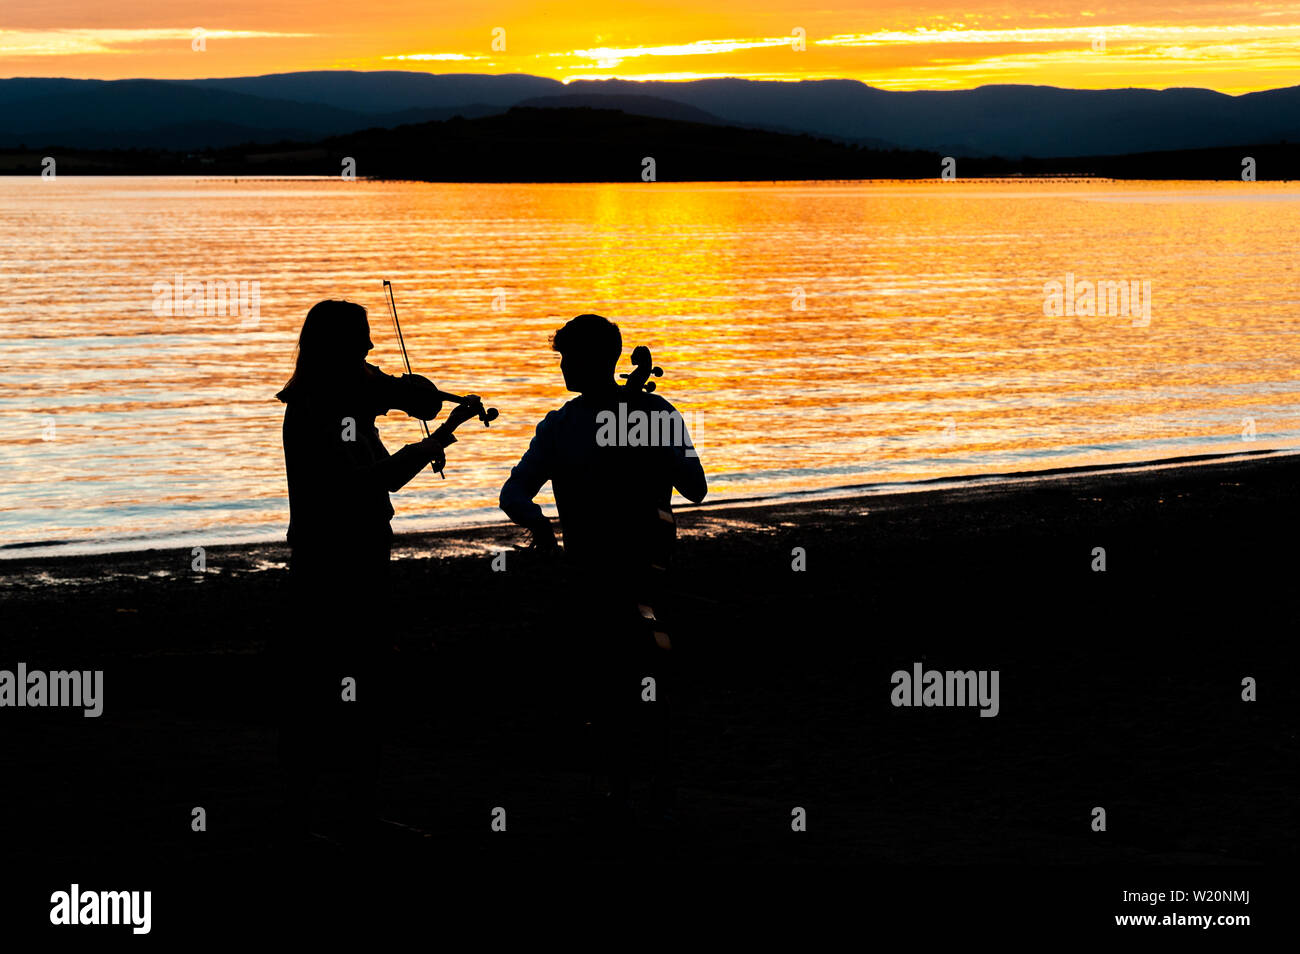 bantry-west-cork-ireland-4th-july-2019-bantry-is-hosting-the-west-cork-chamber-music-festival-this-week-which-brings-classical-musicians-from-far-and-wide-to-play-at-the-various-concerts-in-the-town-violin-player-kate-fleming-and-cellist-callum-owens-both-from-cork-played-as-the-sun-went-down-this-evening-credit-andy-gibsonalamy-live-news-W20NMJ.jpg